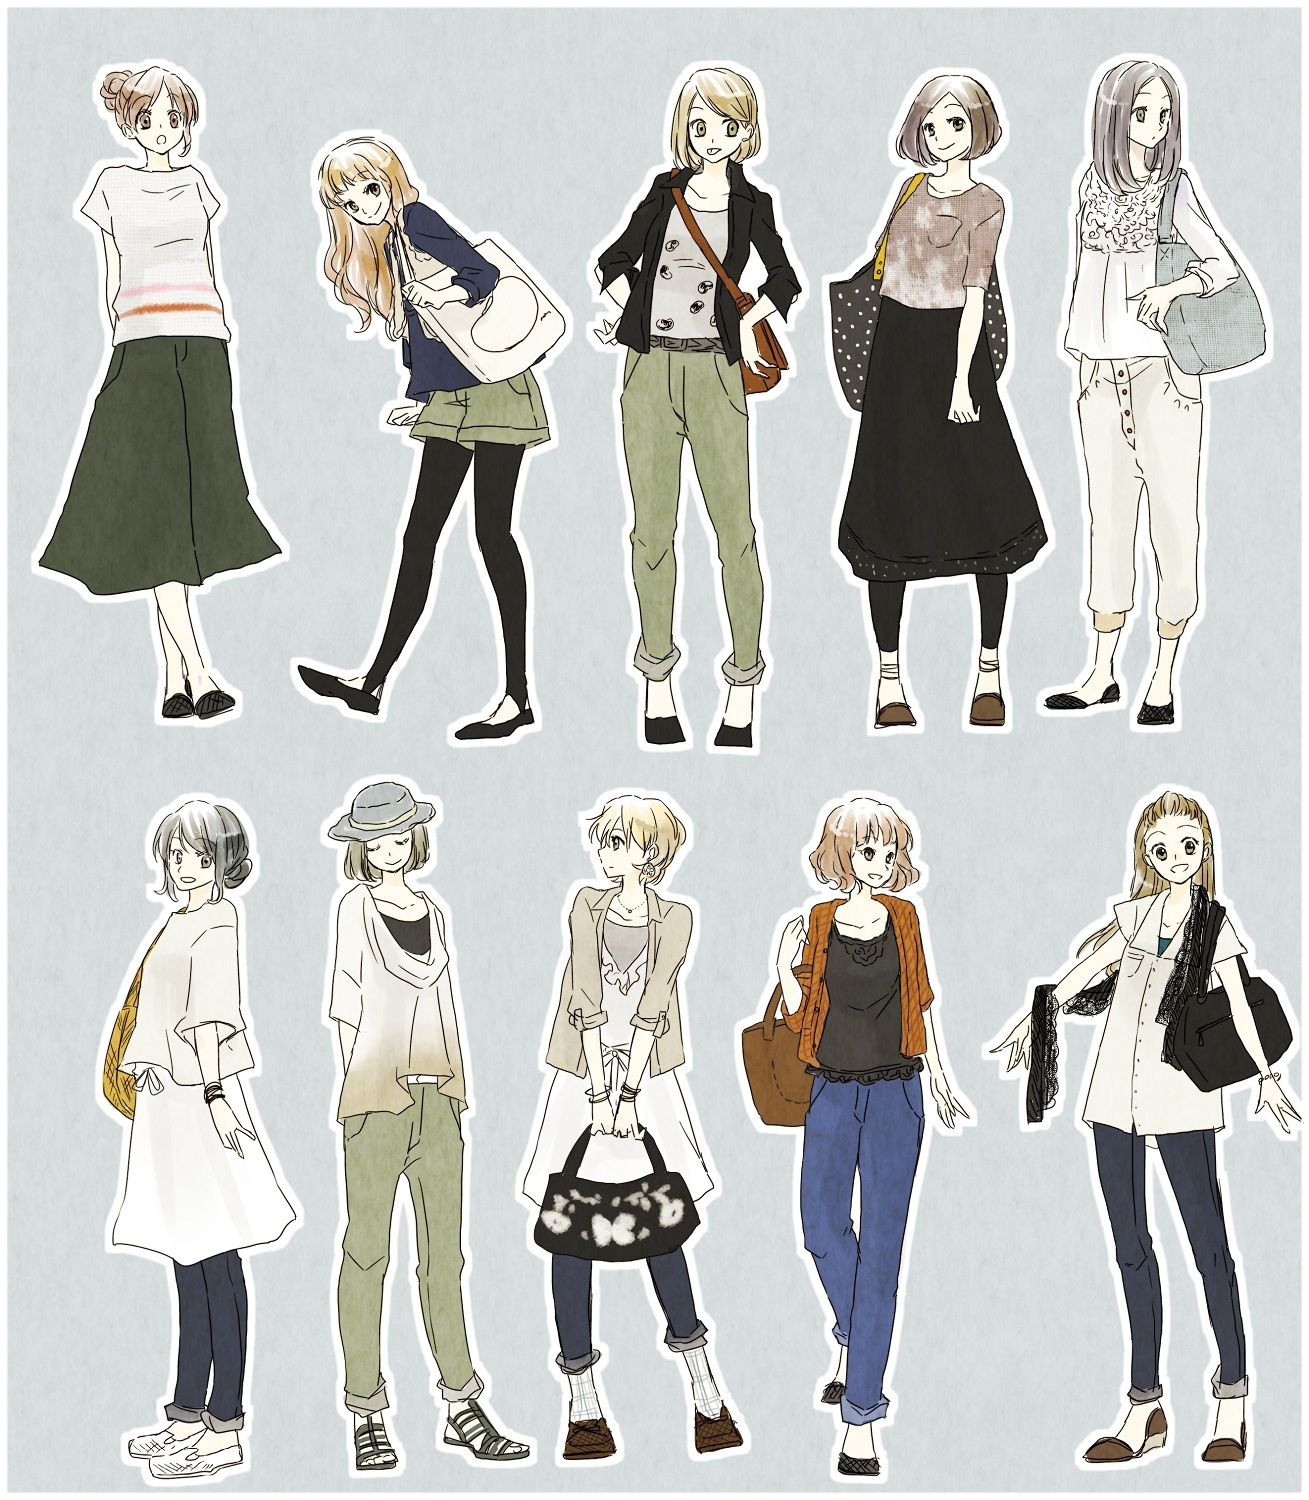 Outfits Anime Outfits Fashion Illustration Sketches Girl Drawing